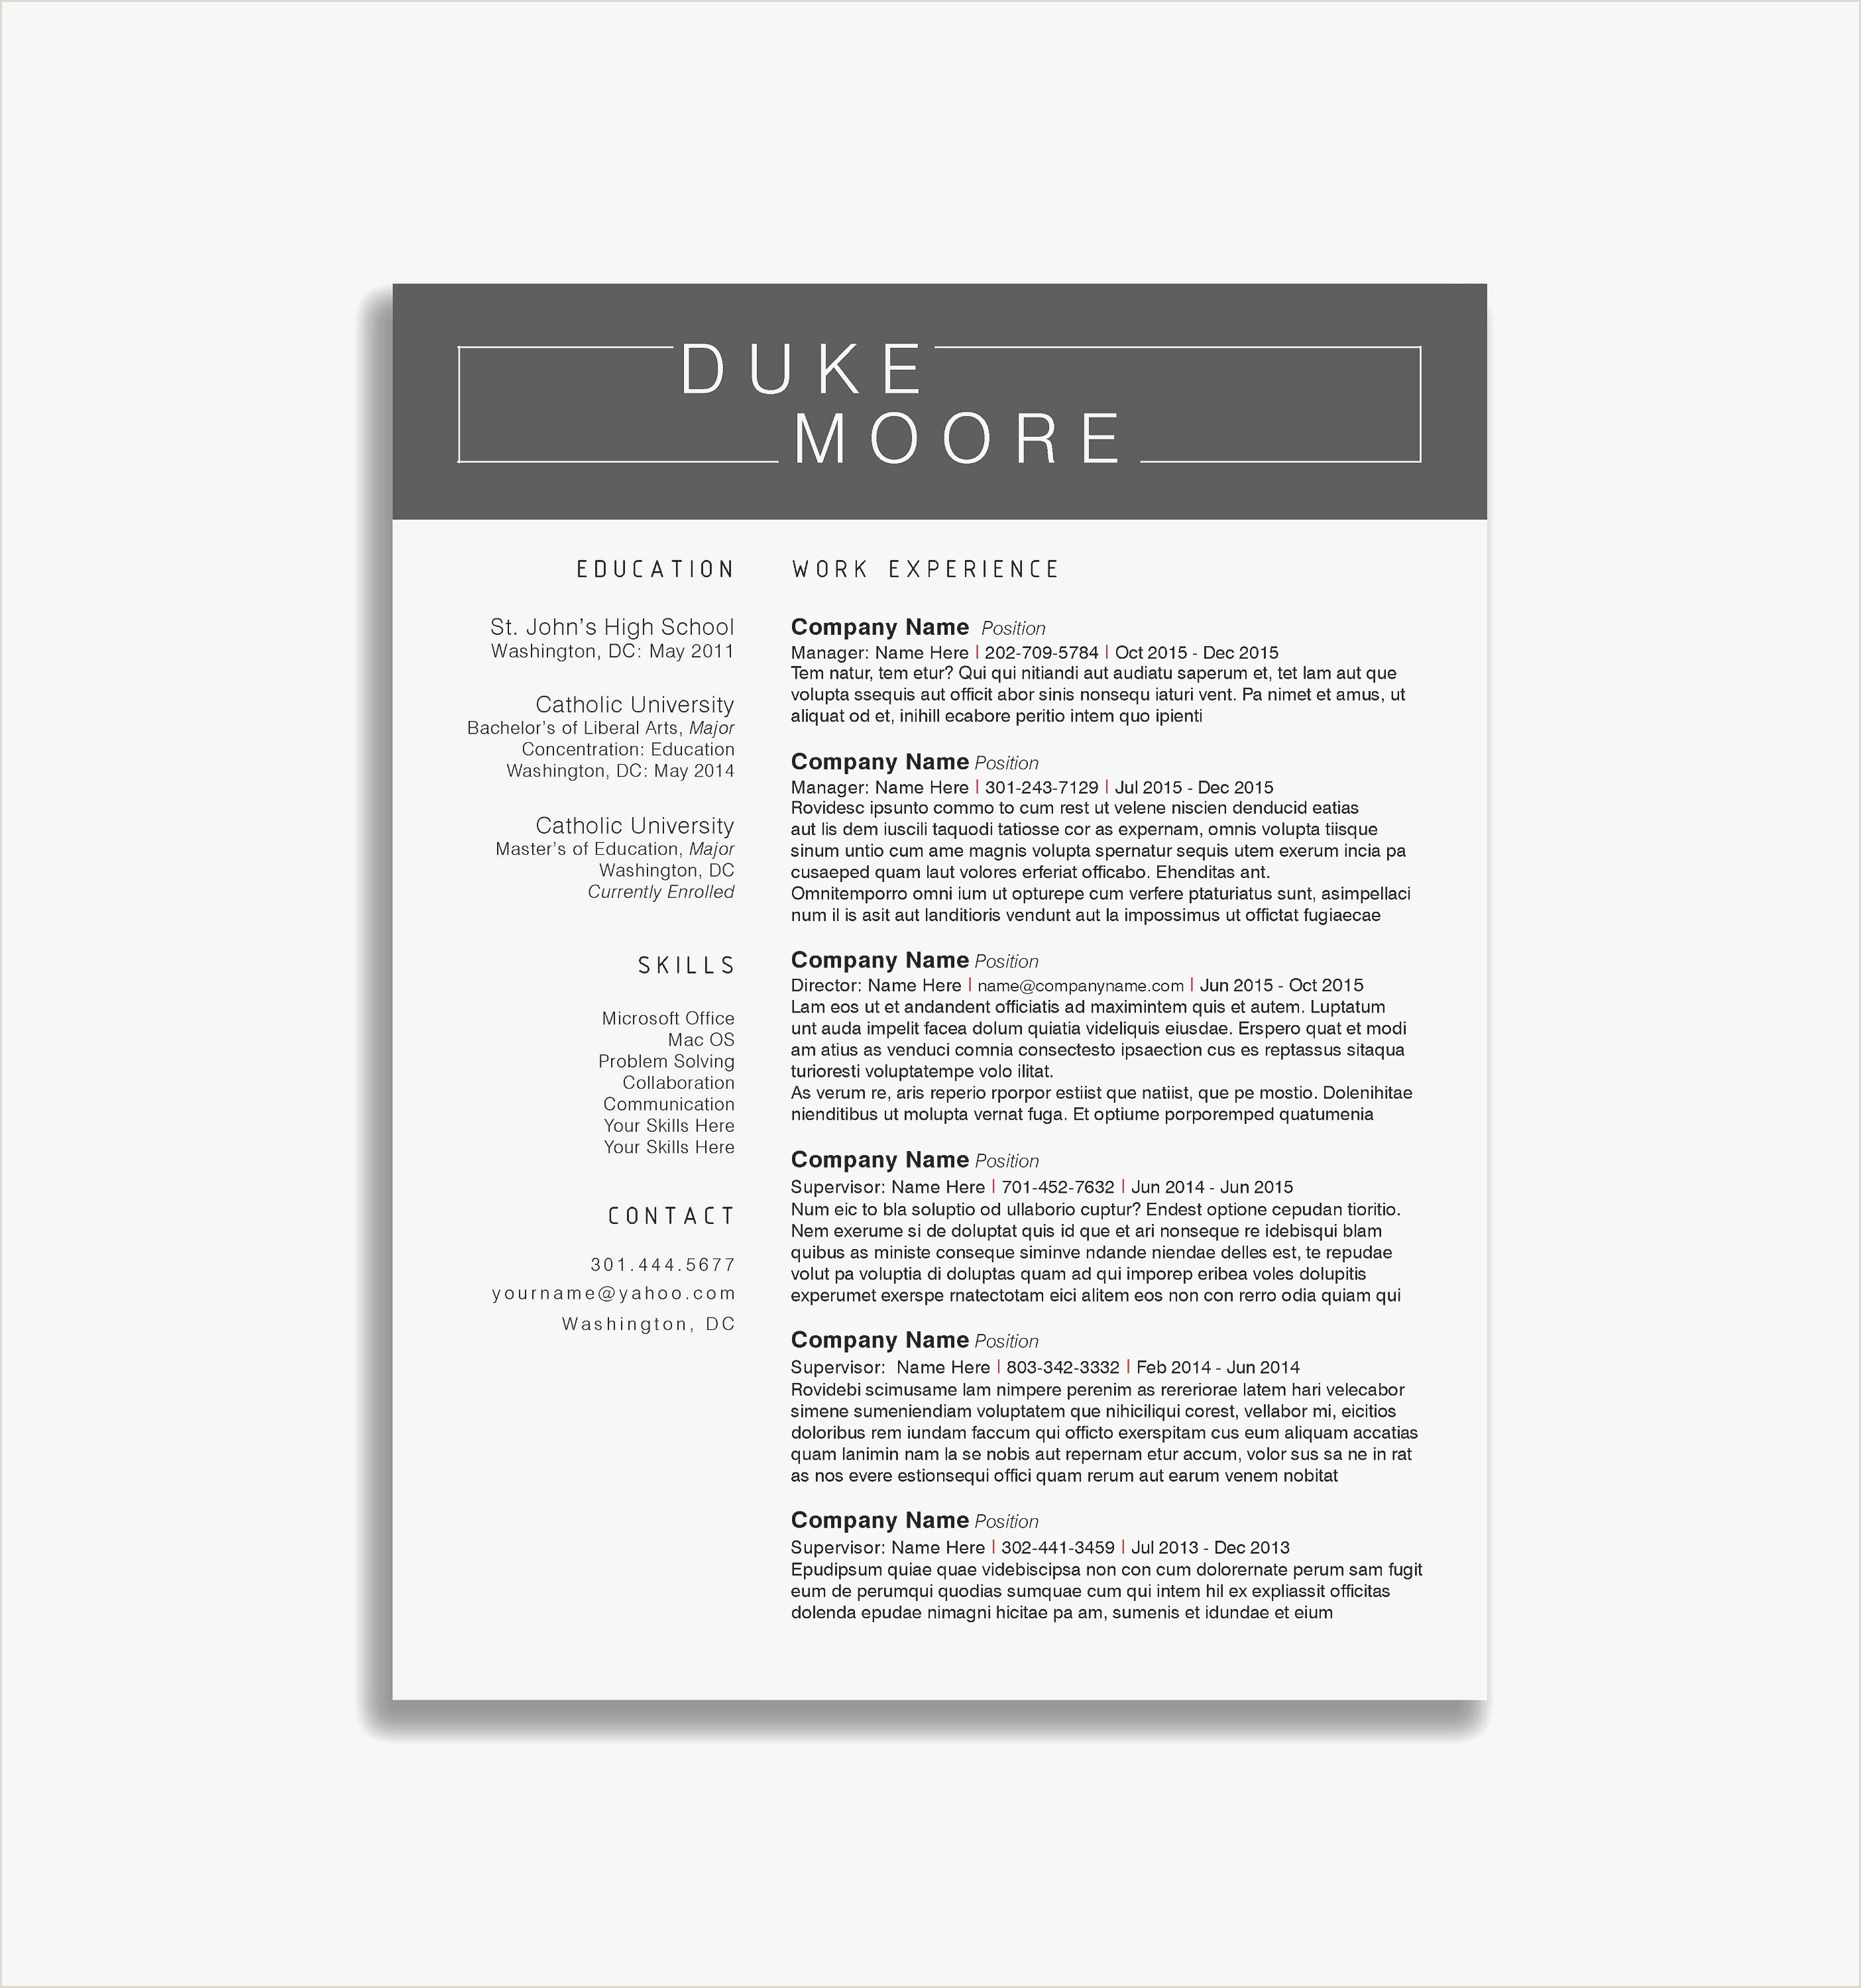 Resume format for Job Simple social Work Resume Template Medical Job Templates Entry